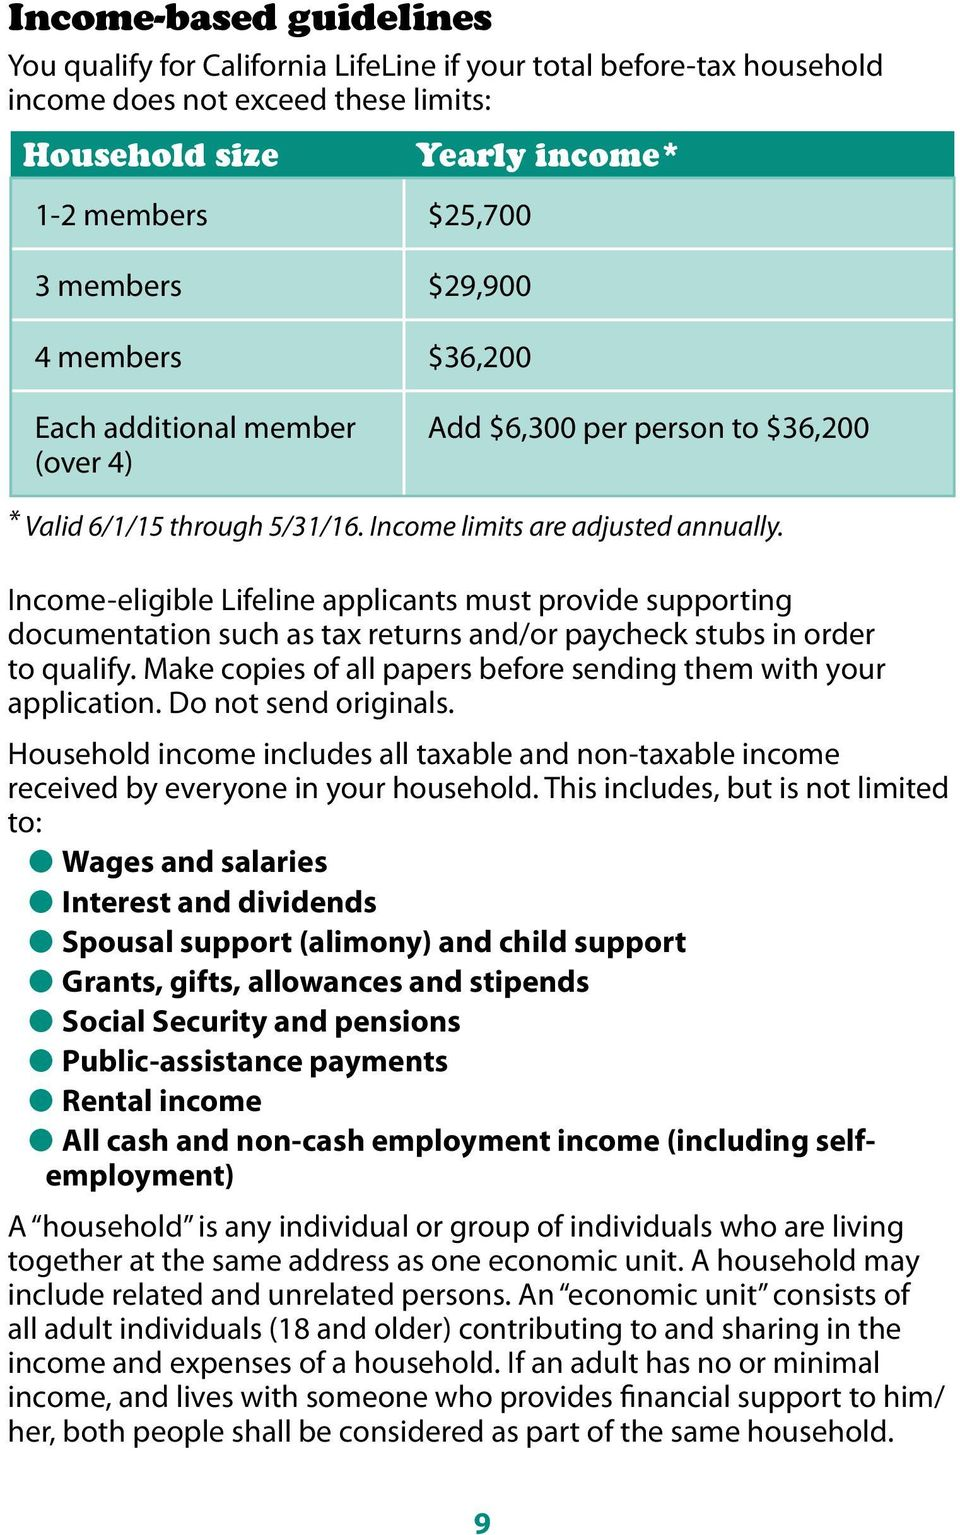 Income-eligible Lifeline applicants must provide supporting documentation such as tax returns and/or paycheck stubs in order to qualify.